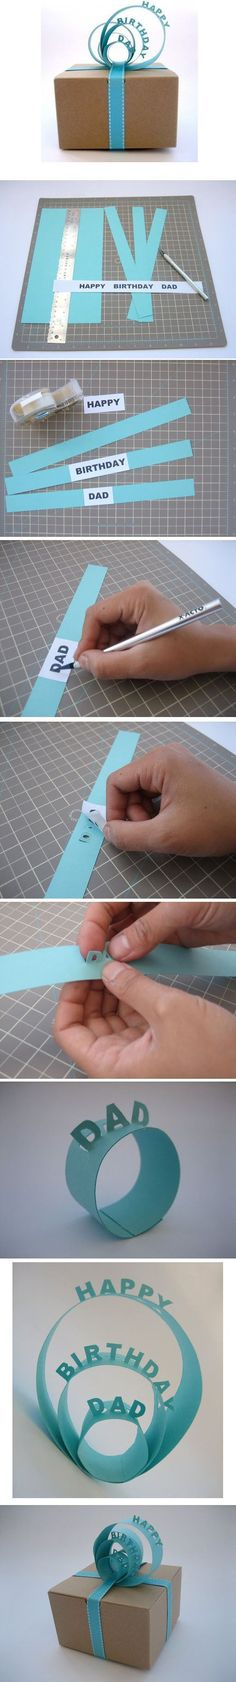 Create a pop-up message ribbon made of strips of paper. Check out below for instructions. #teenbirthdaygifts